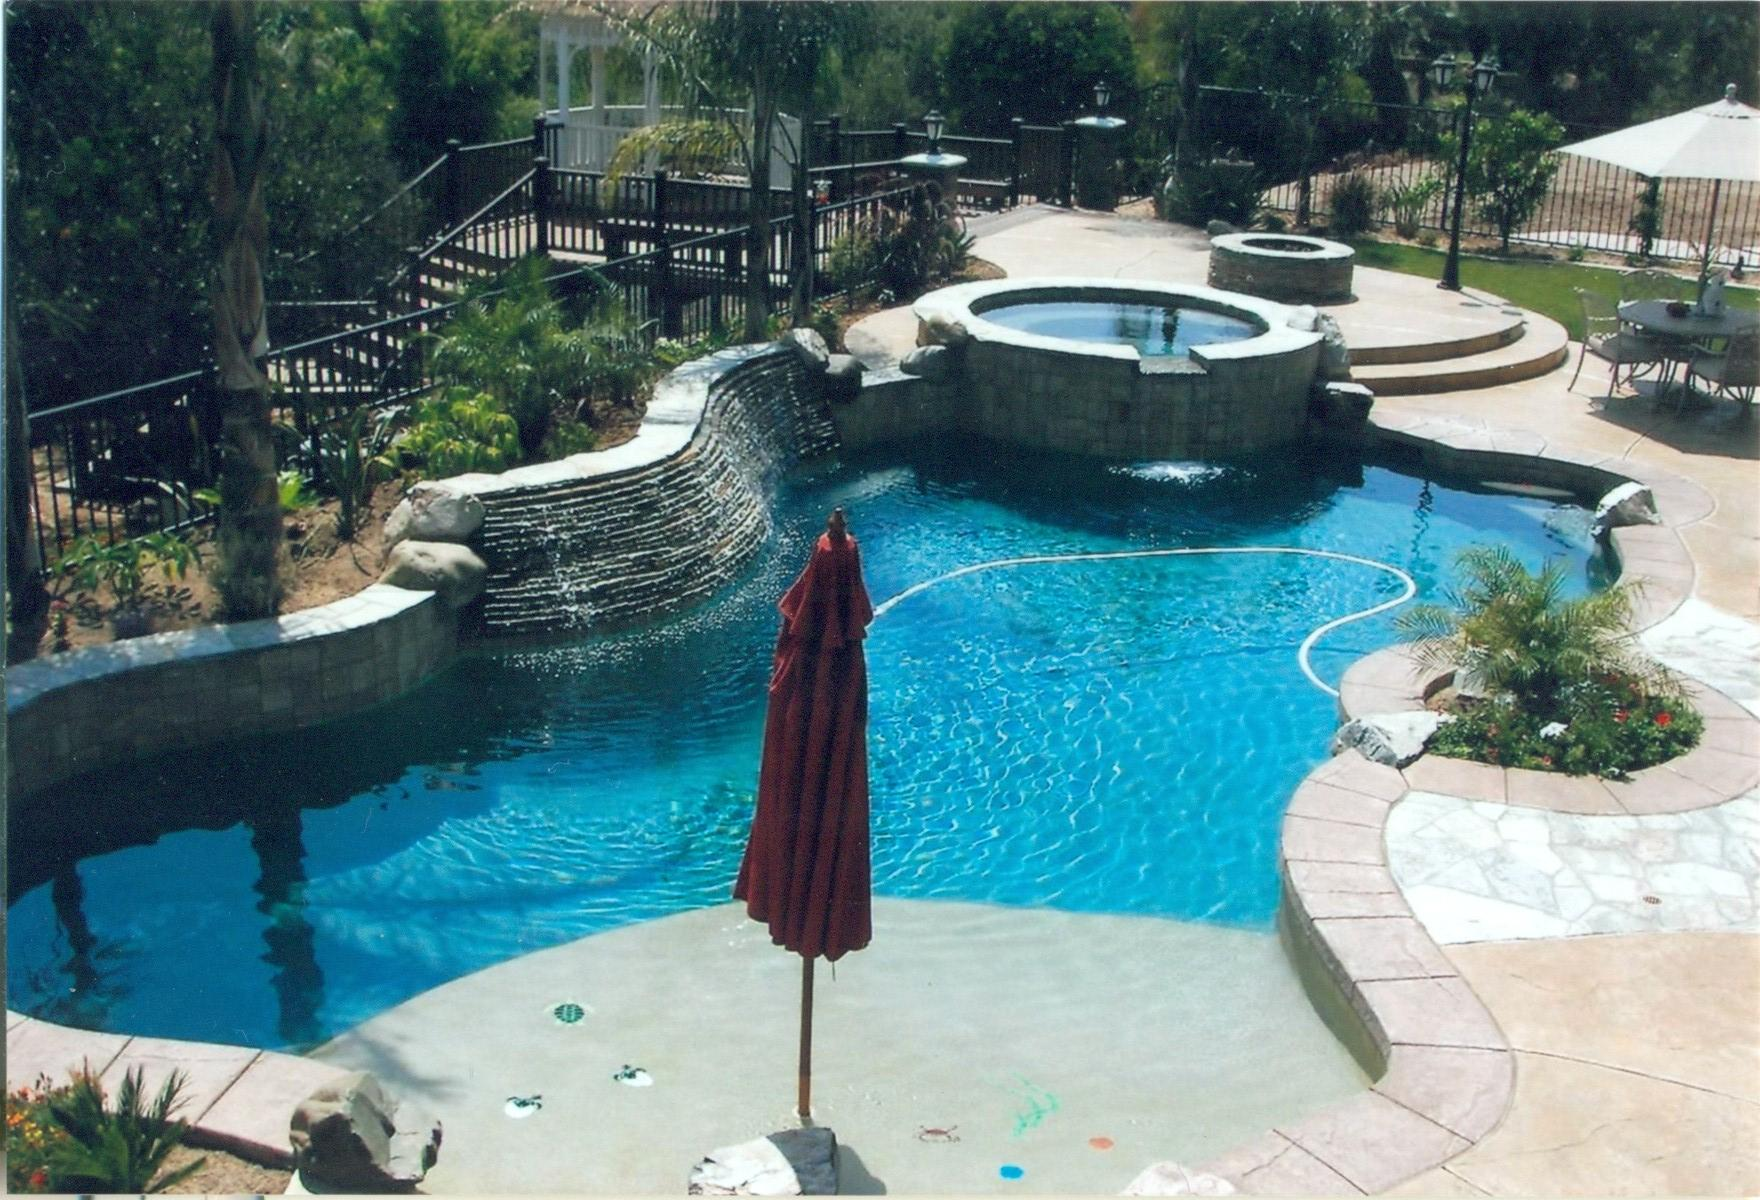 Murphy pools spas coupons near me in palmdale 8coupons for Pool showrooms near me